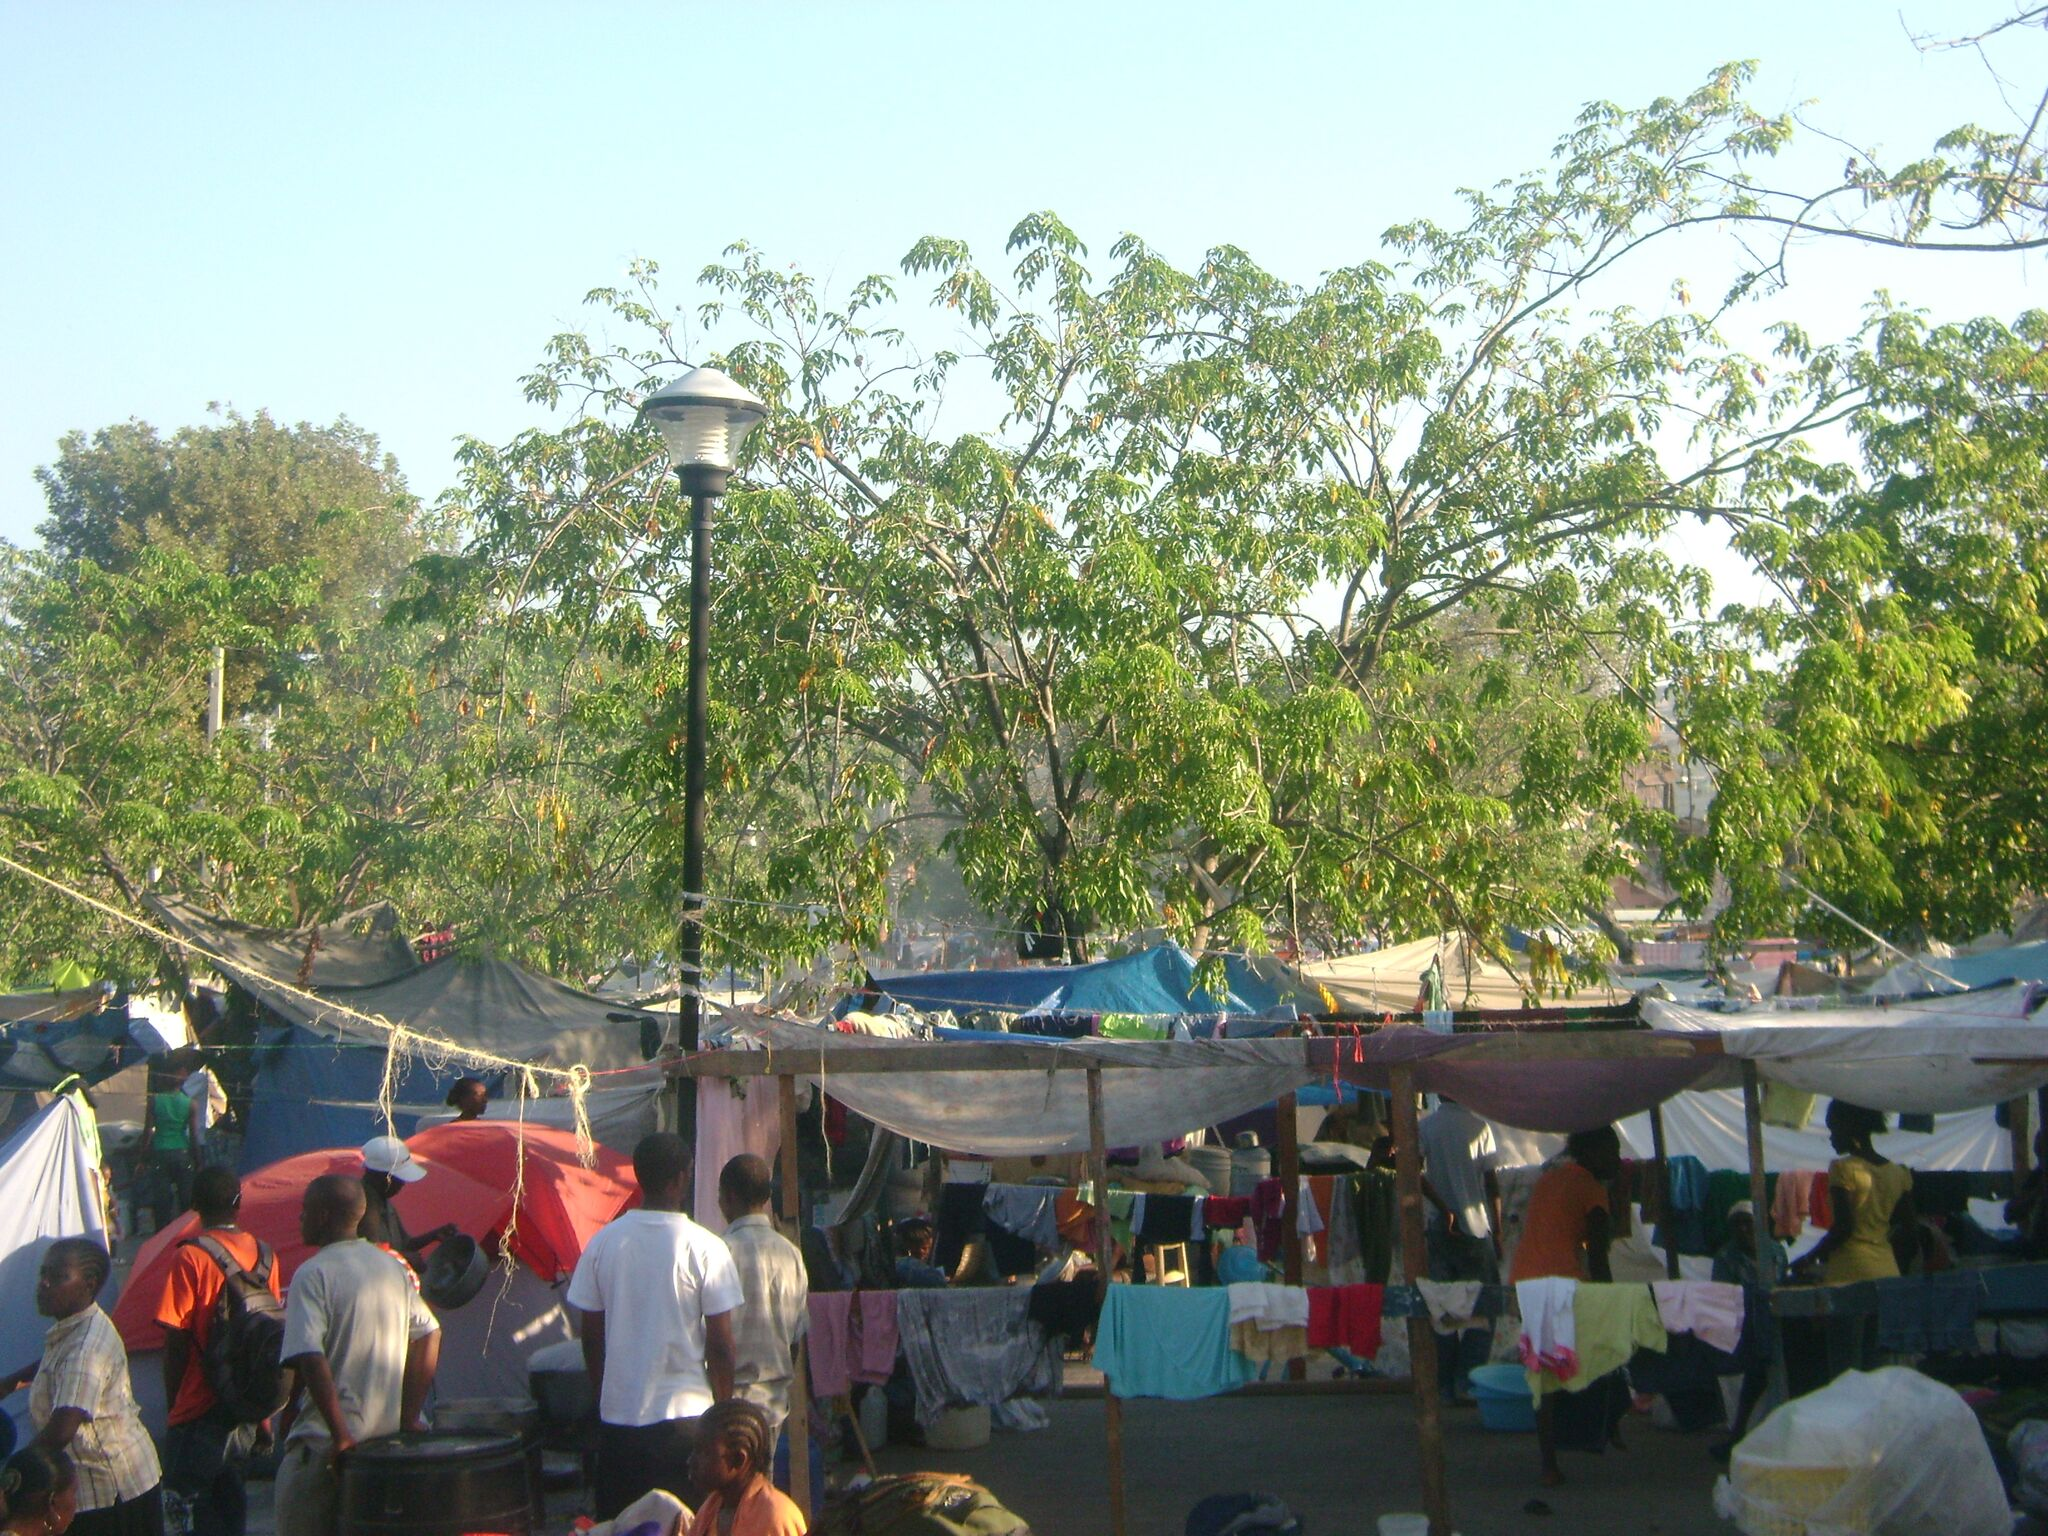 A tent city in Port au Prince, Haiti that was built to temporarily house people displaced by the quake.